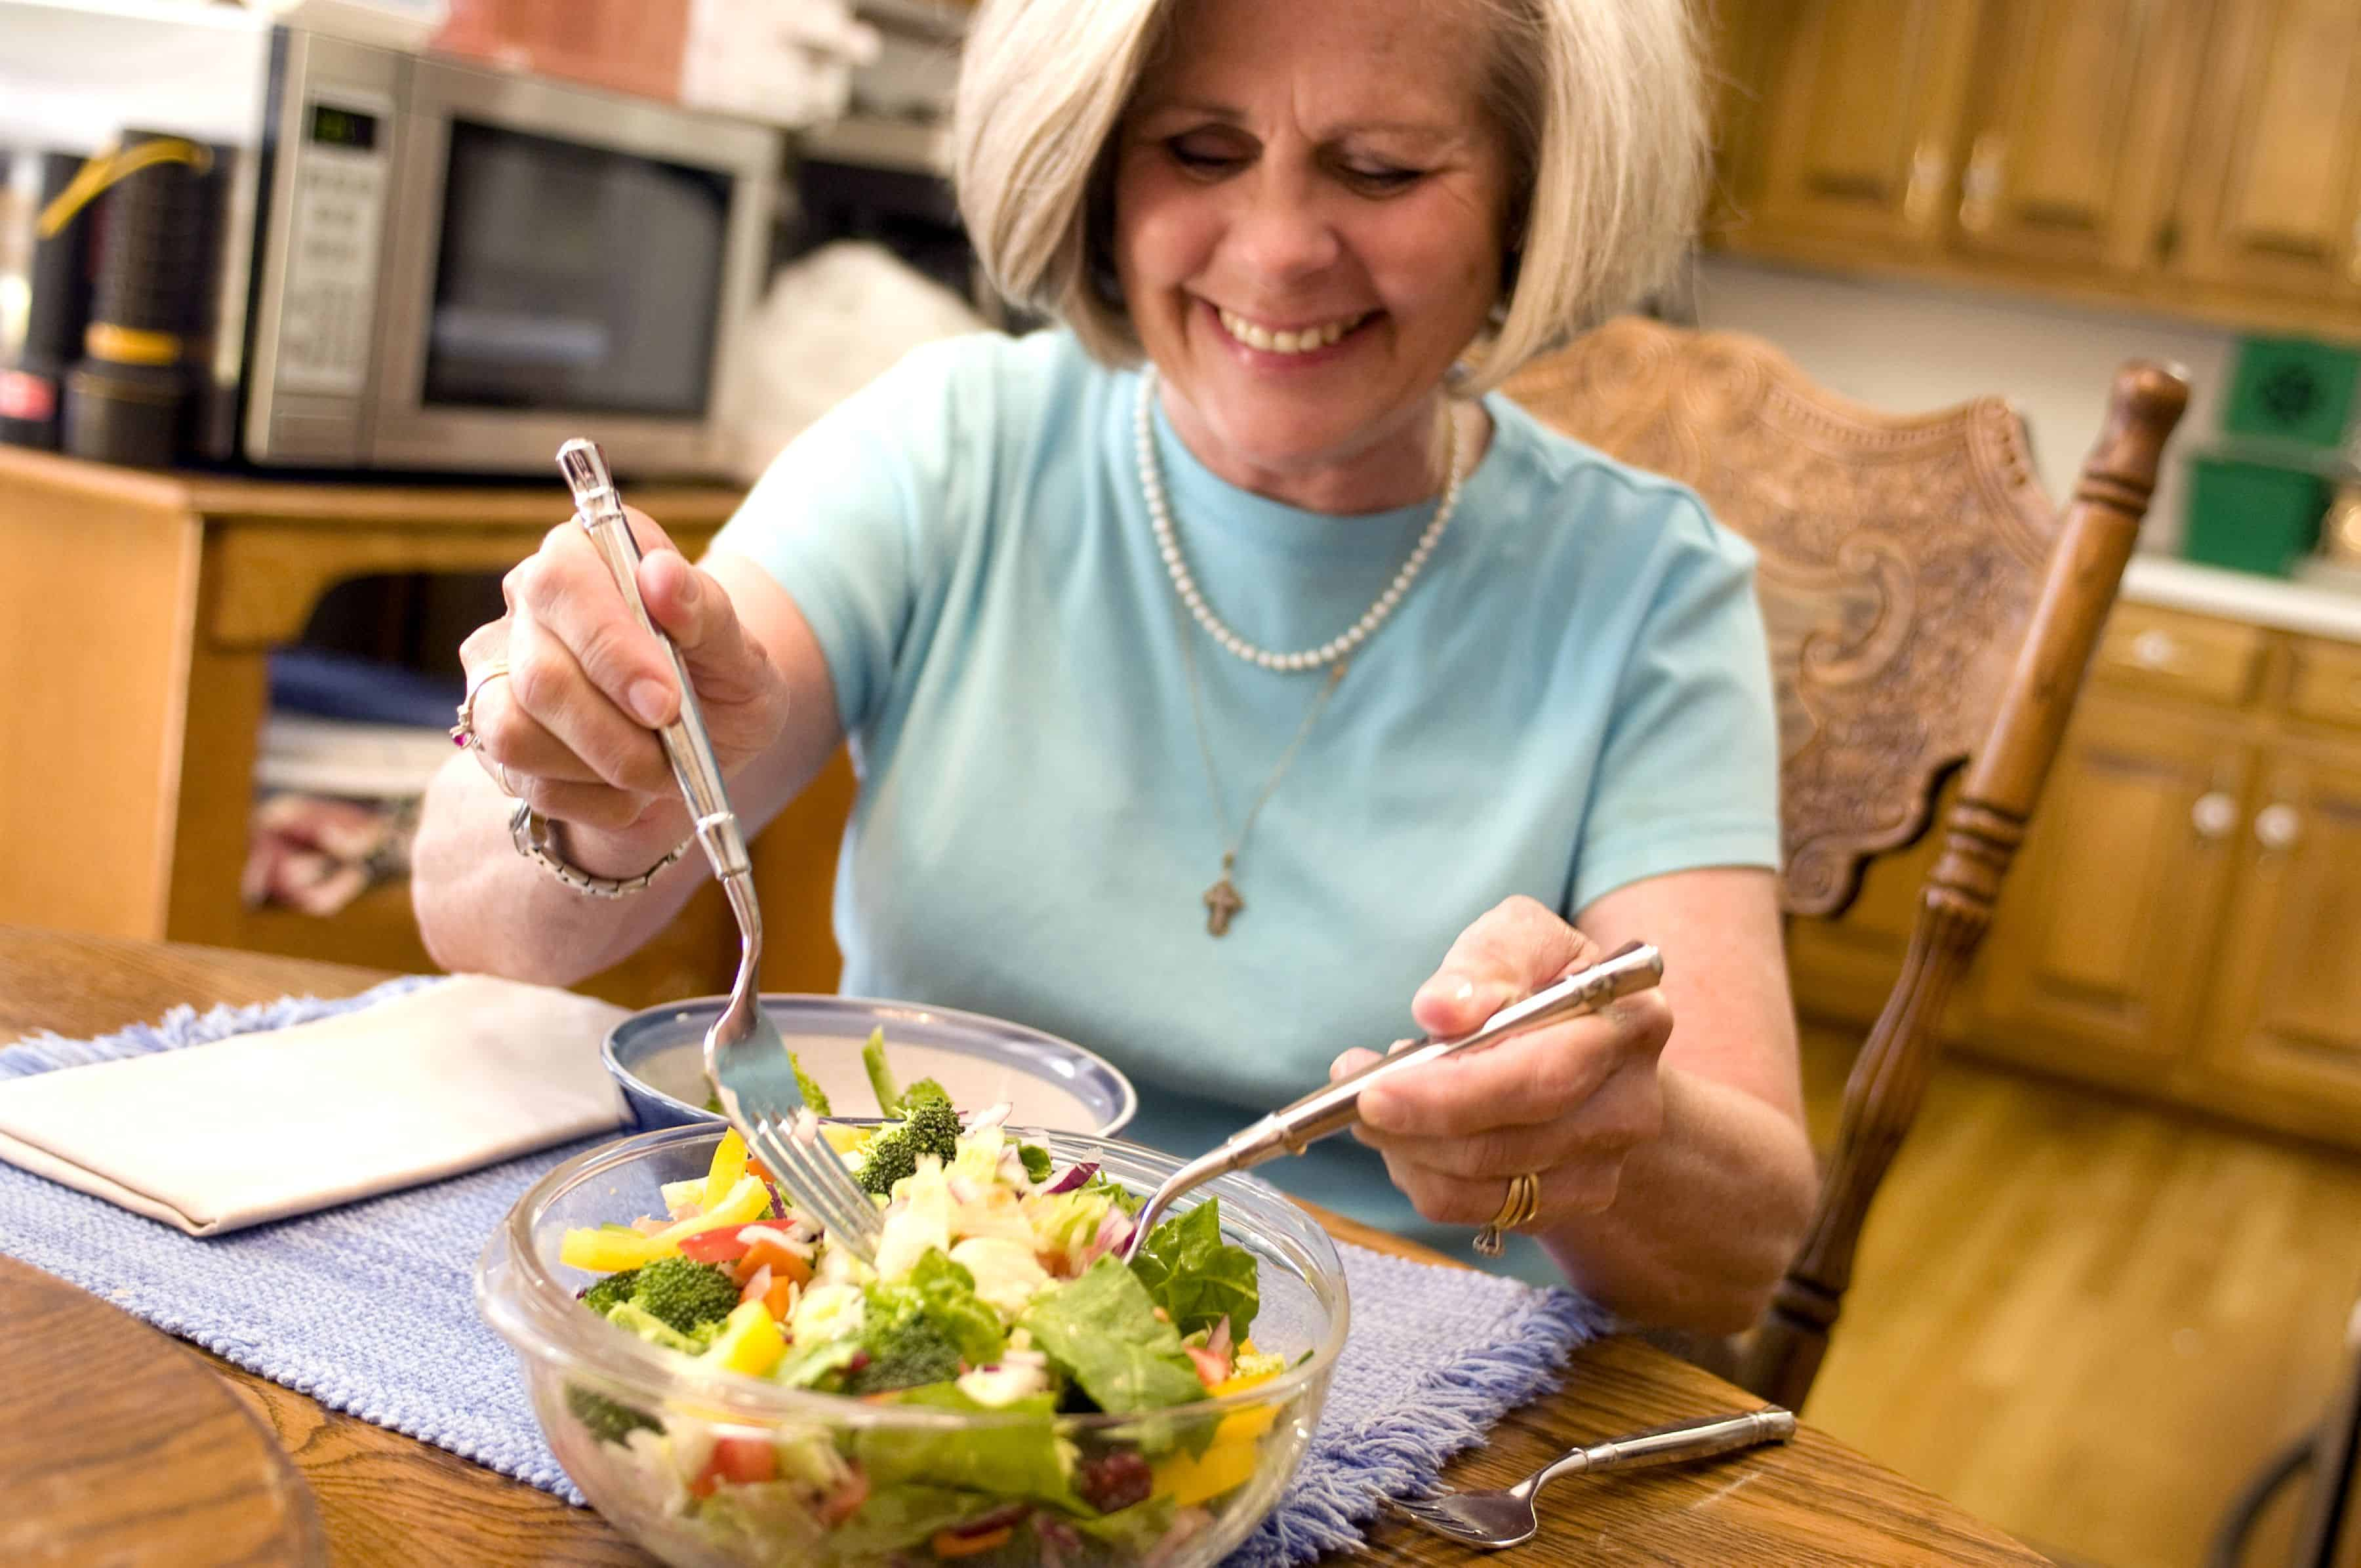 elderly woman experiencing menopause relief through diet to your health nutrition